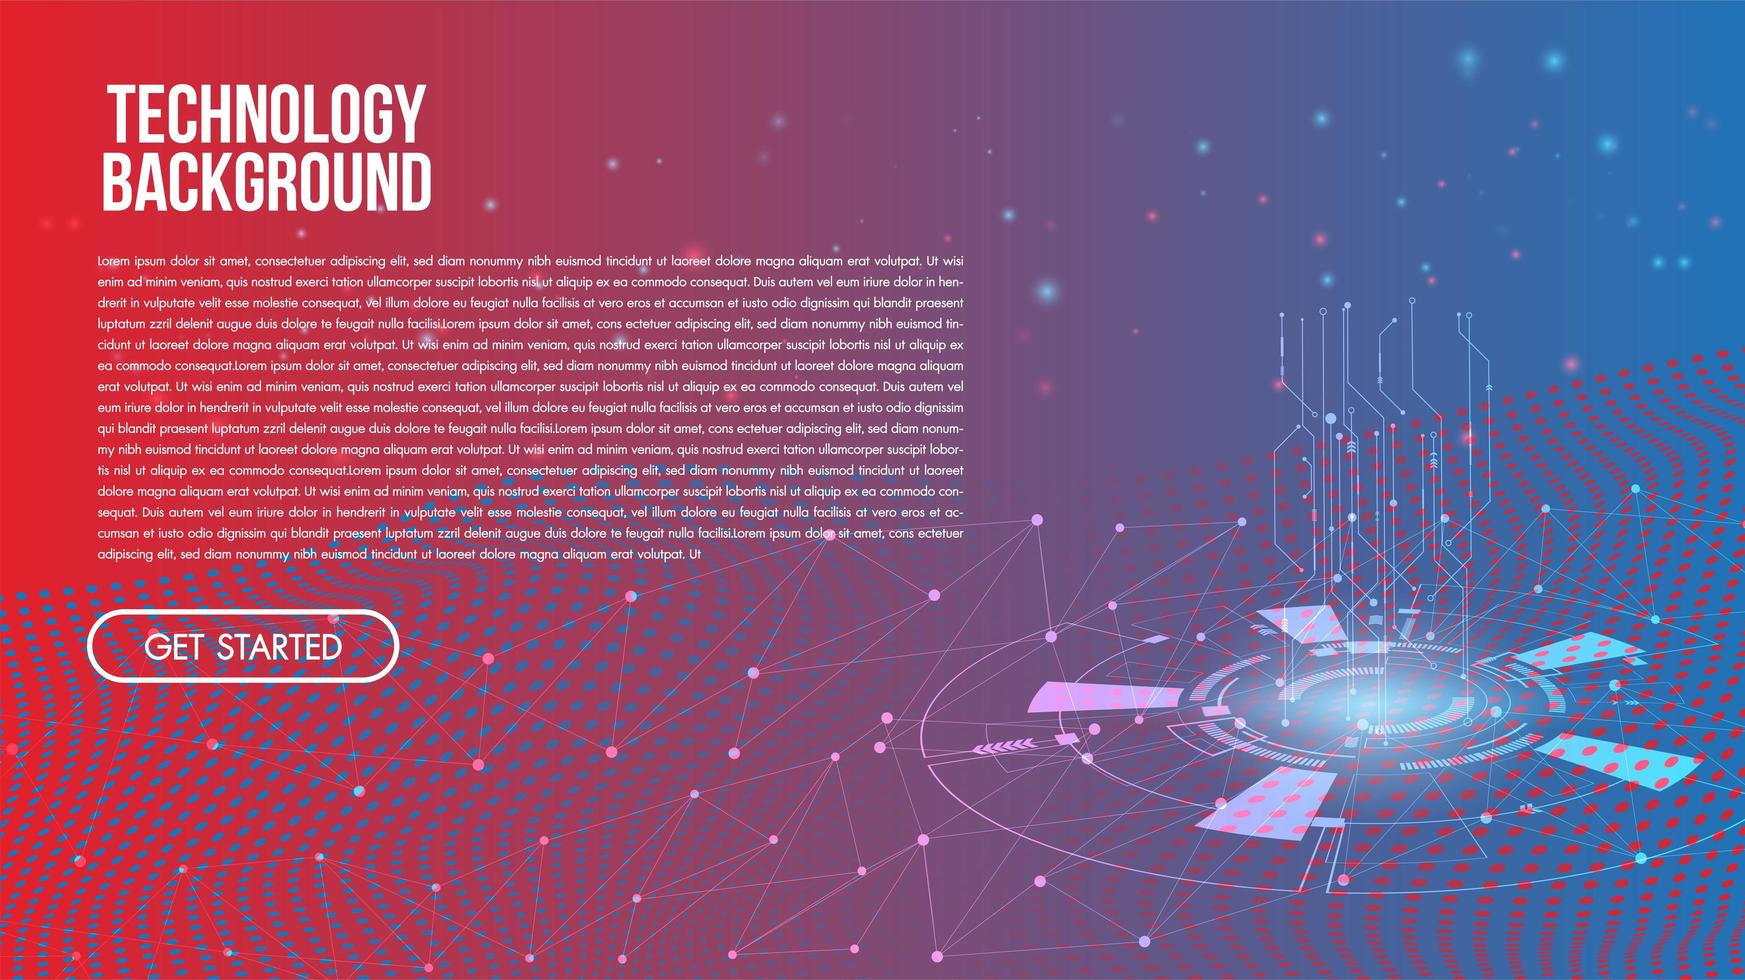 Abstract technology background Hi-tech communication concept vector